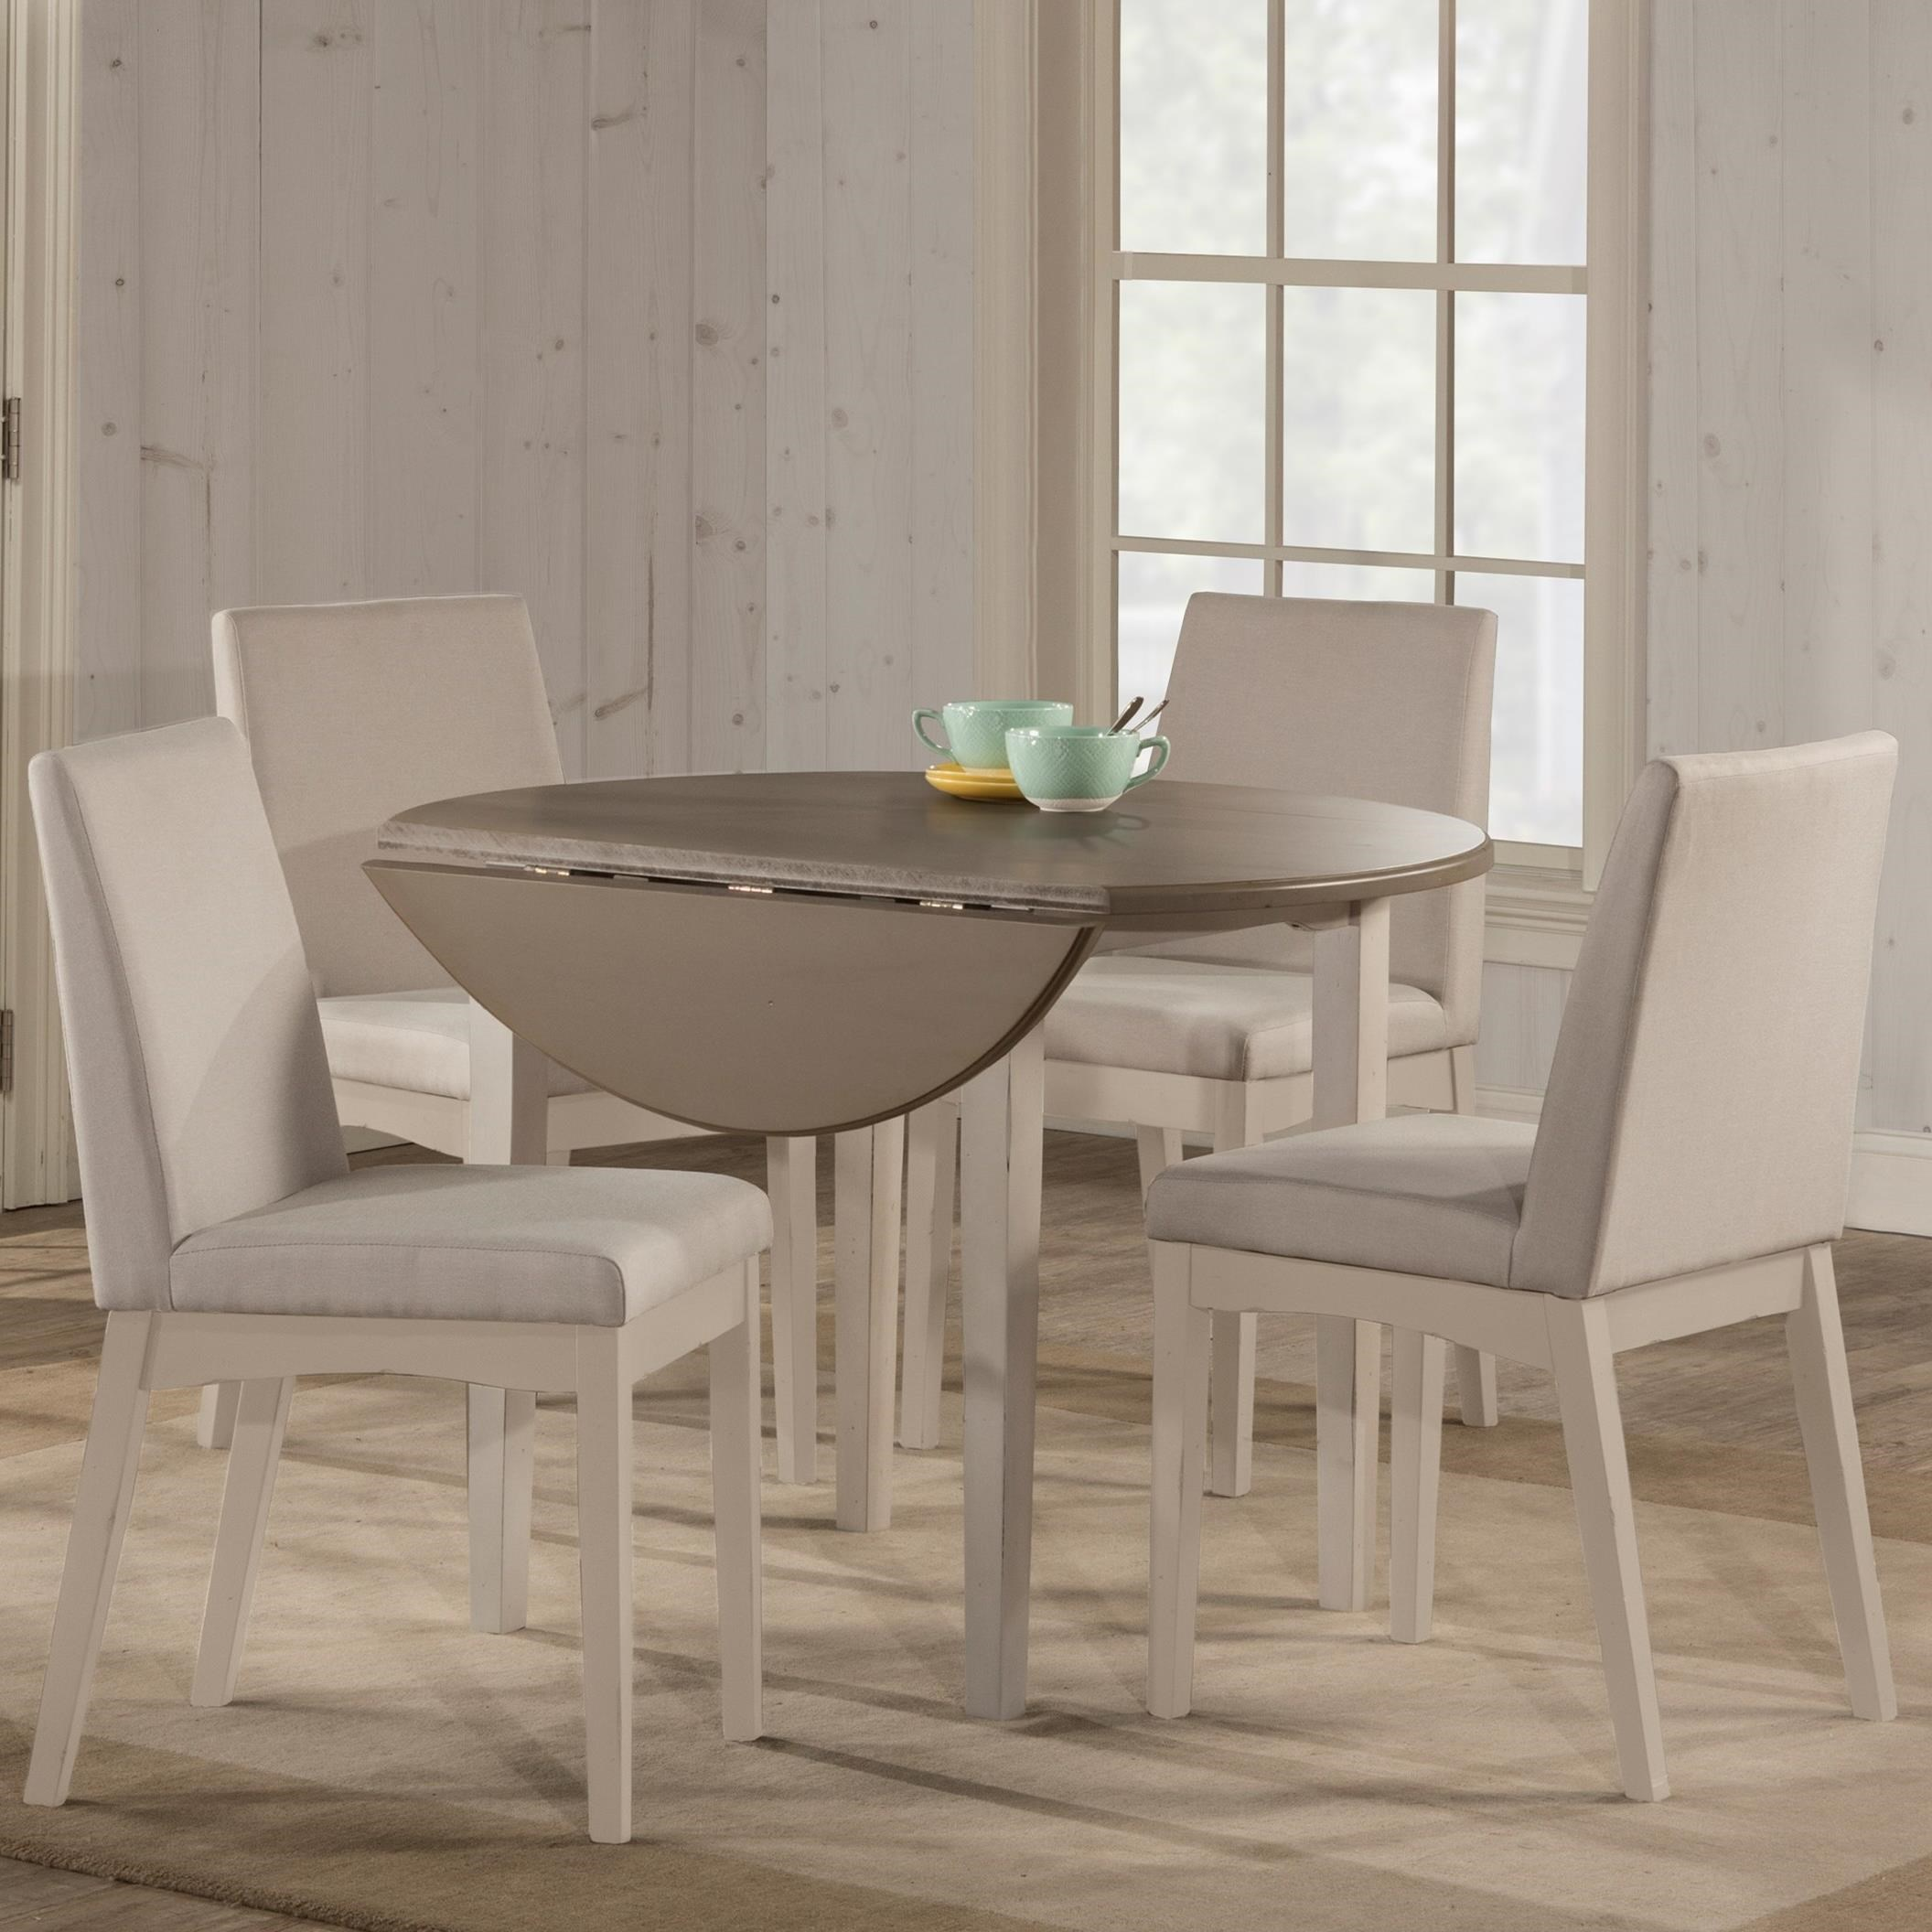 Clarion 5-Piece Dining Set w/ Drop Leaf Table at Ruby Gordon Home